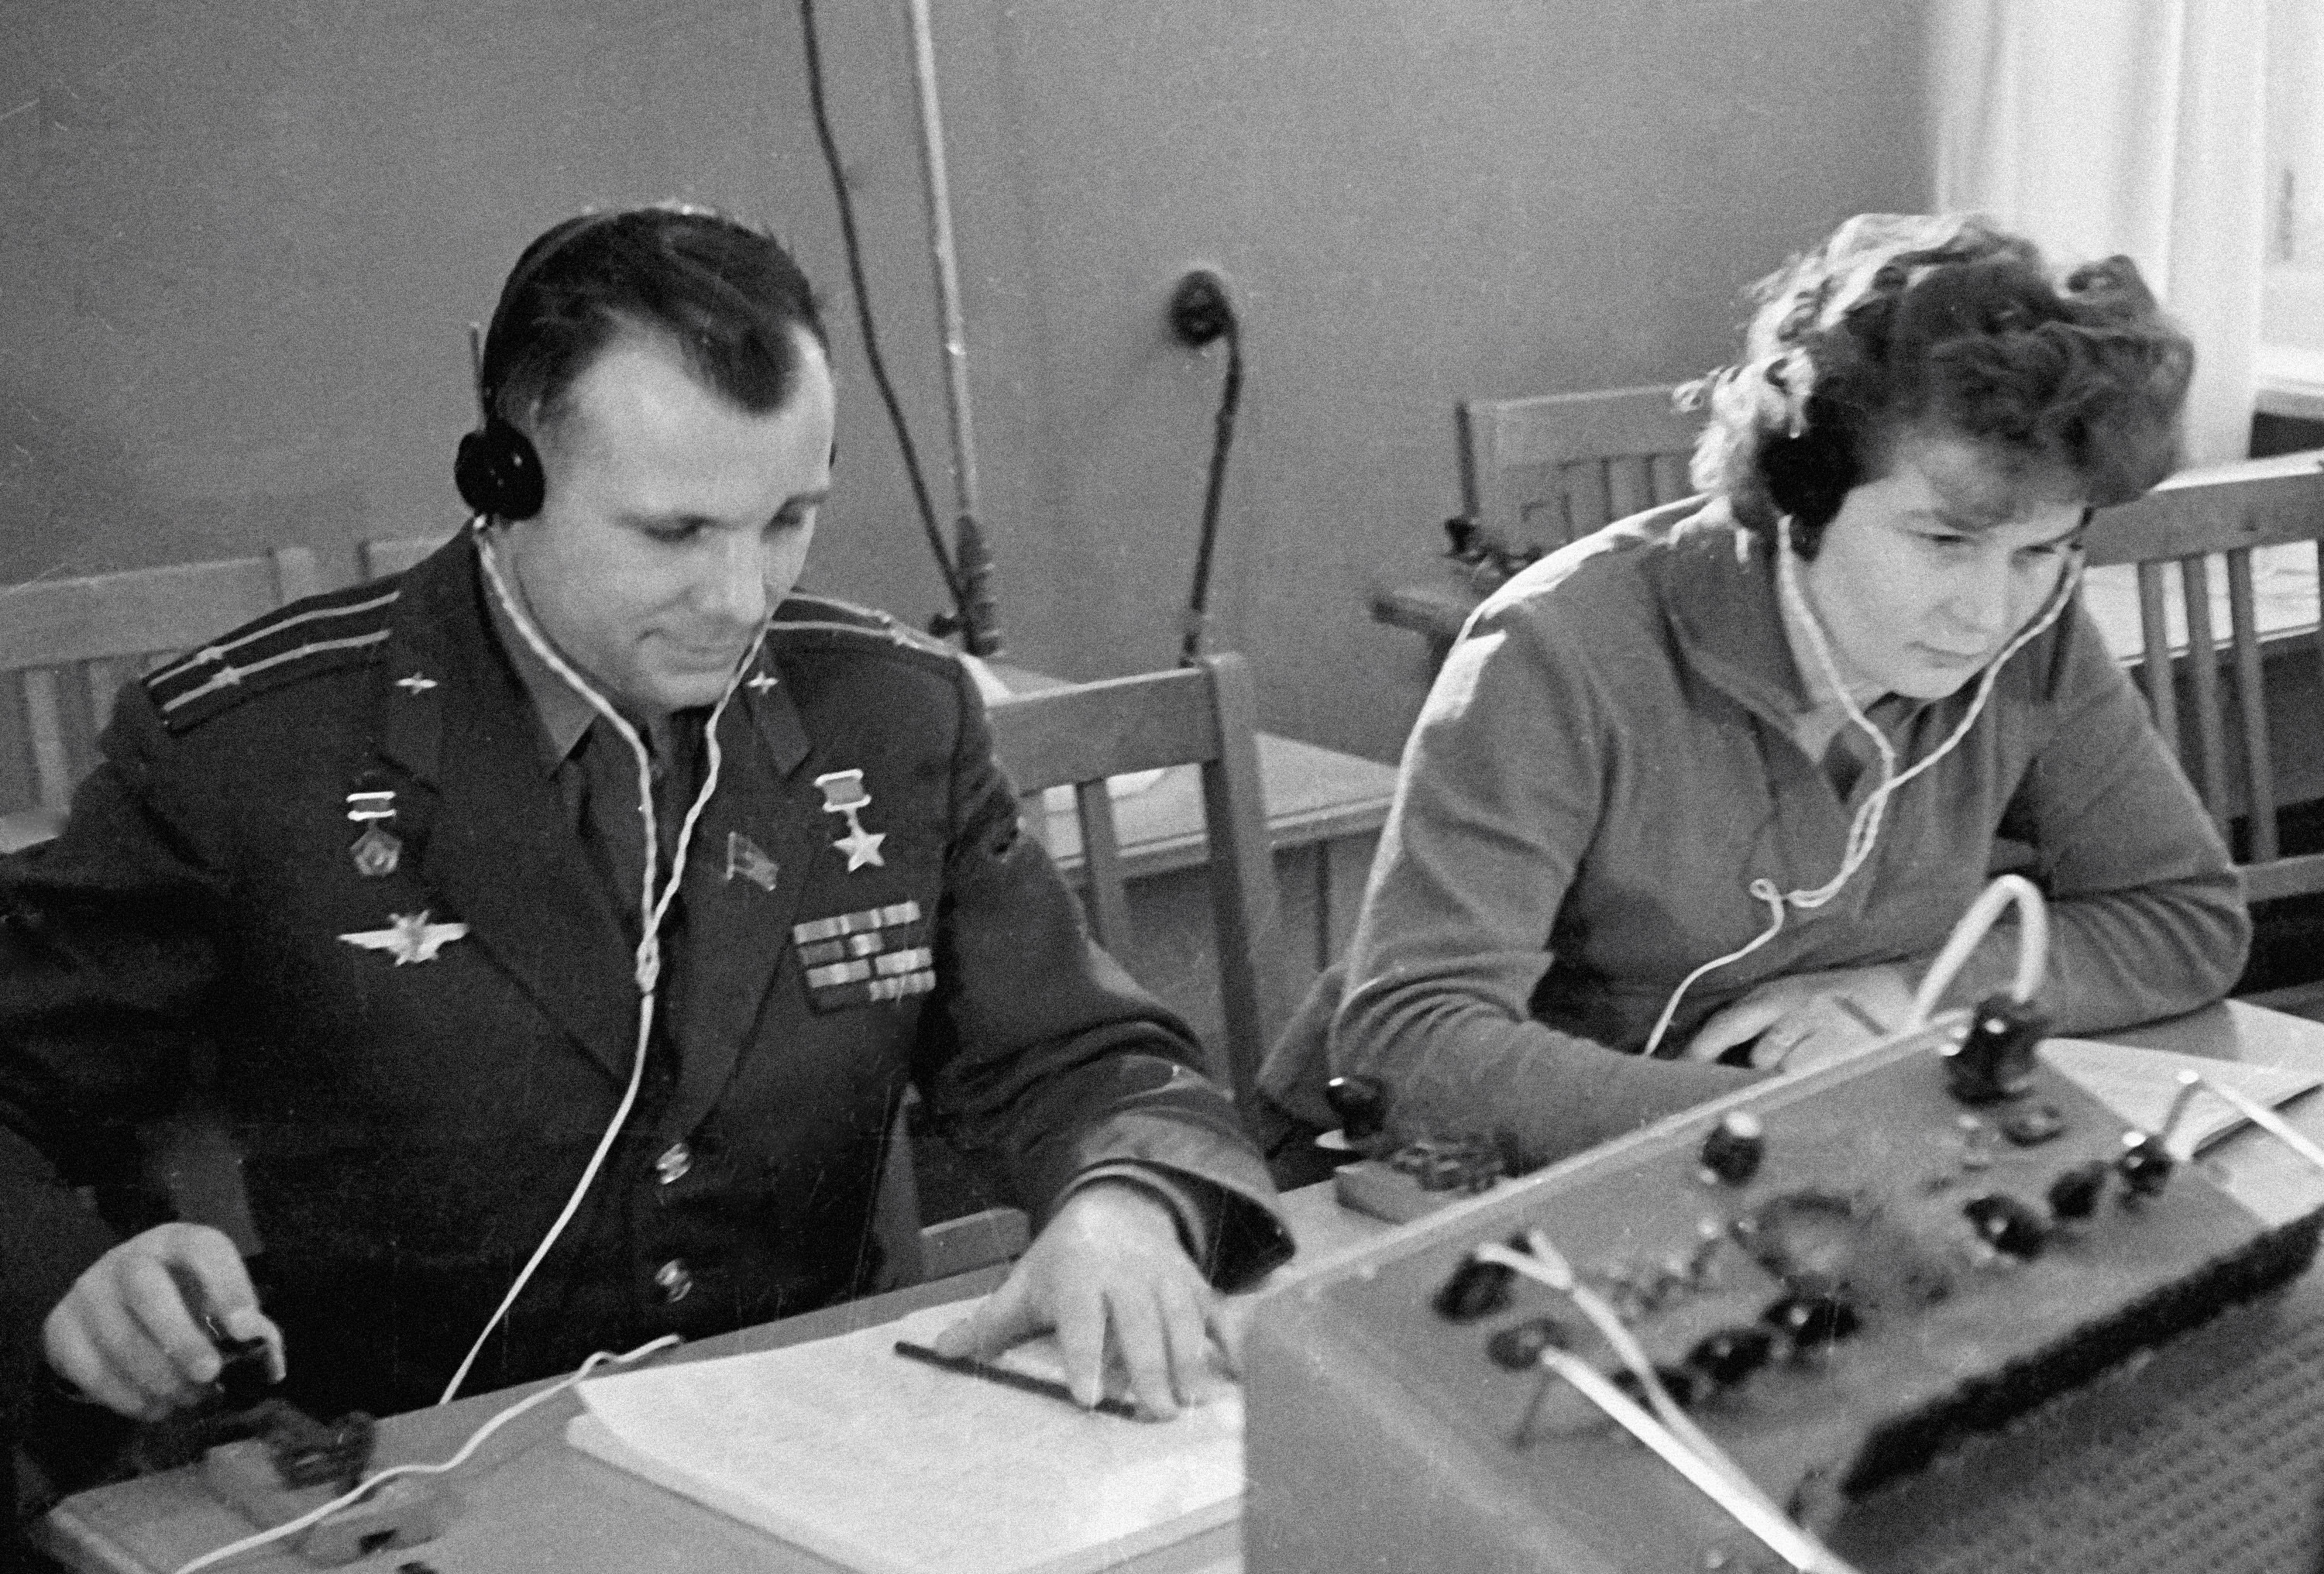 Yuri Gagarin and Valentina Tereshkova during radio communications training.